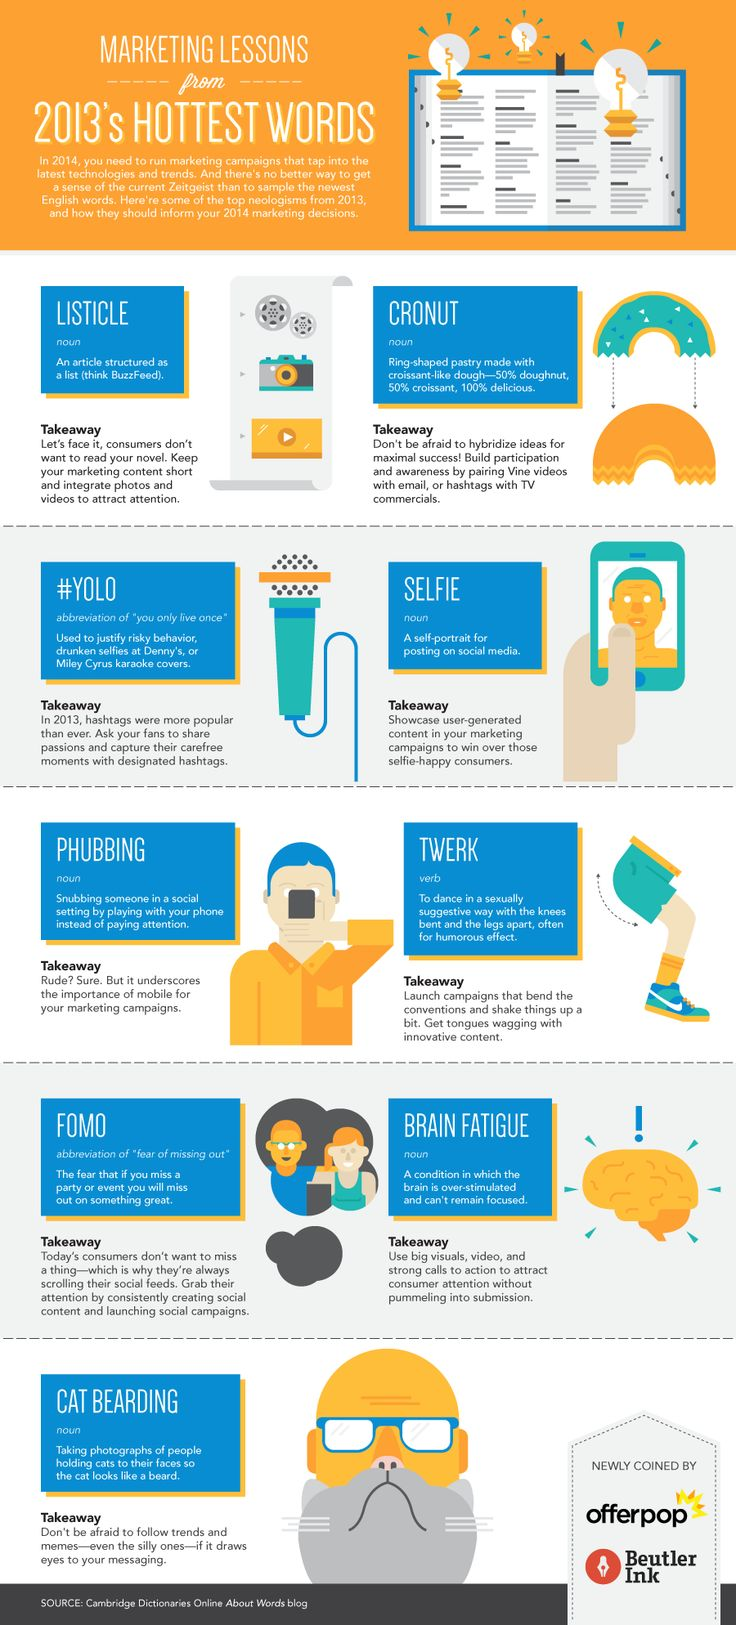 Social Media Marketing Lessons From 2013's Hottest Buzz Words [INFOGRAPHIC]